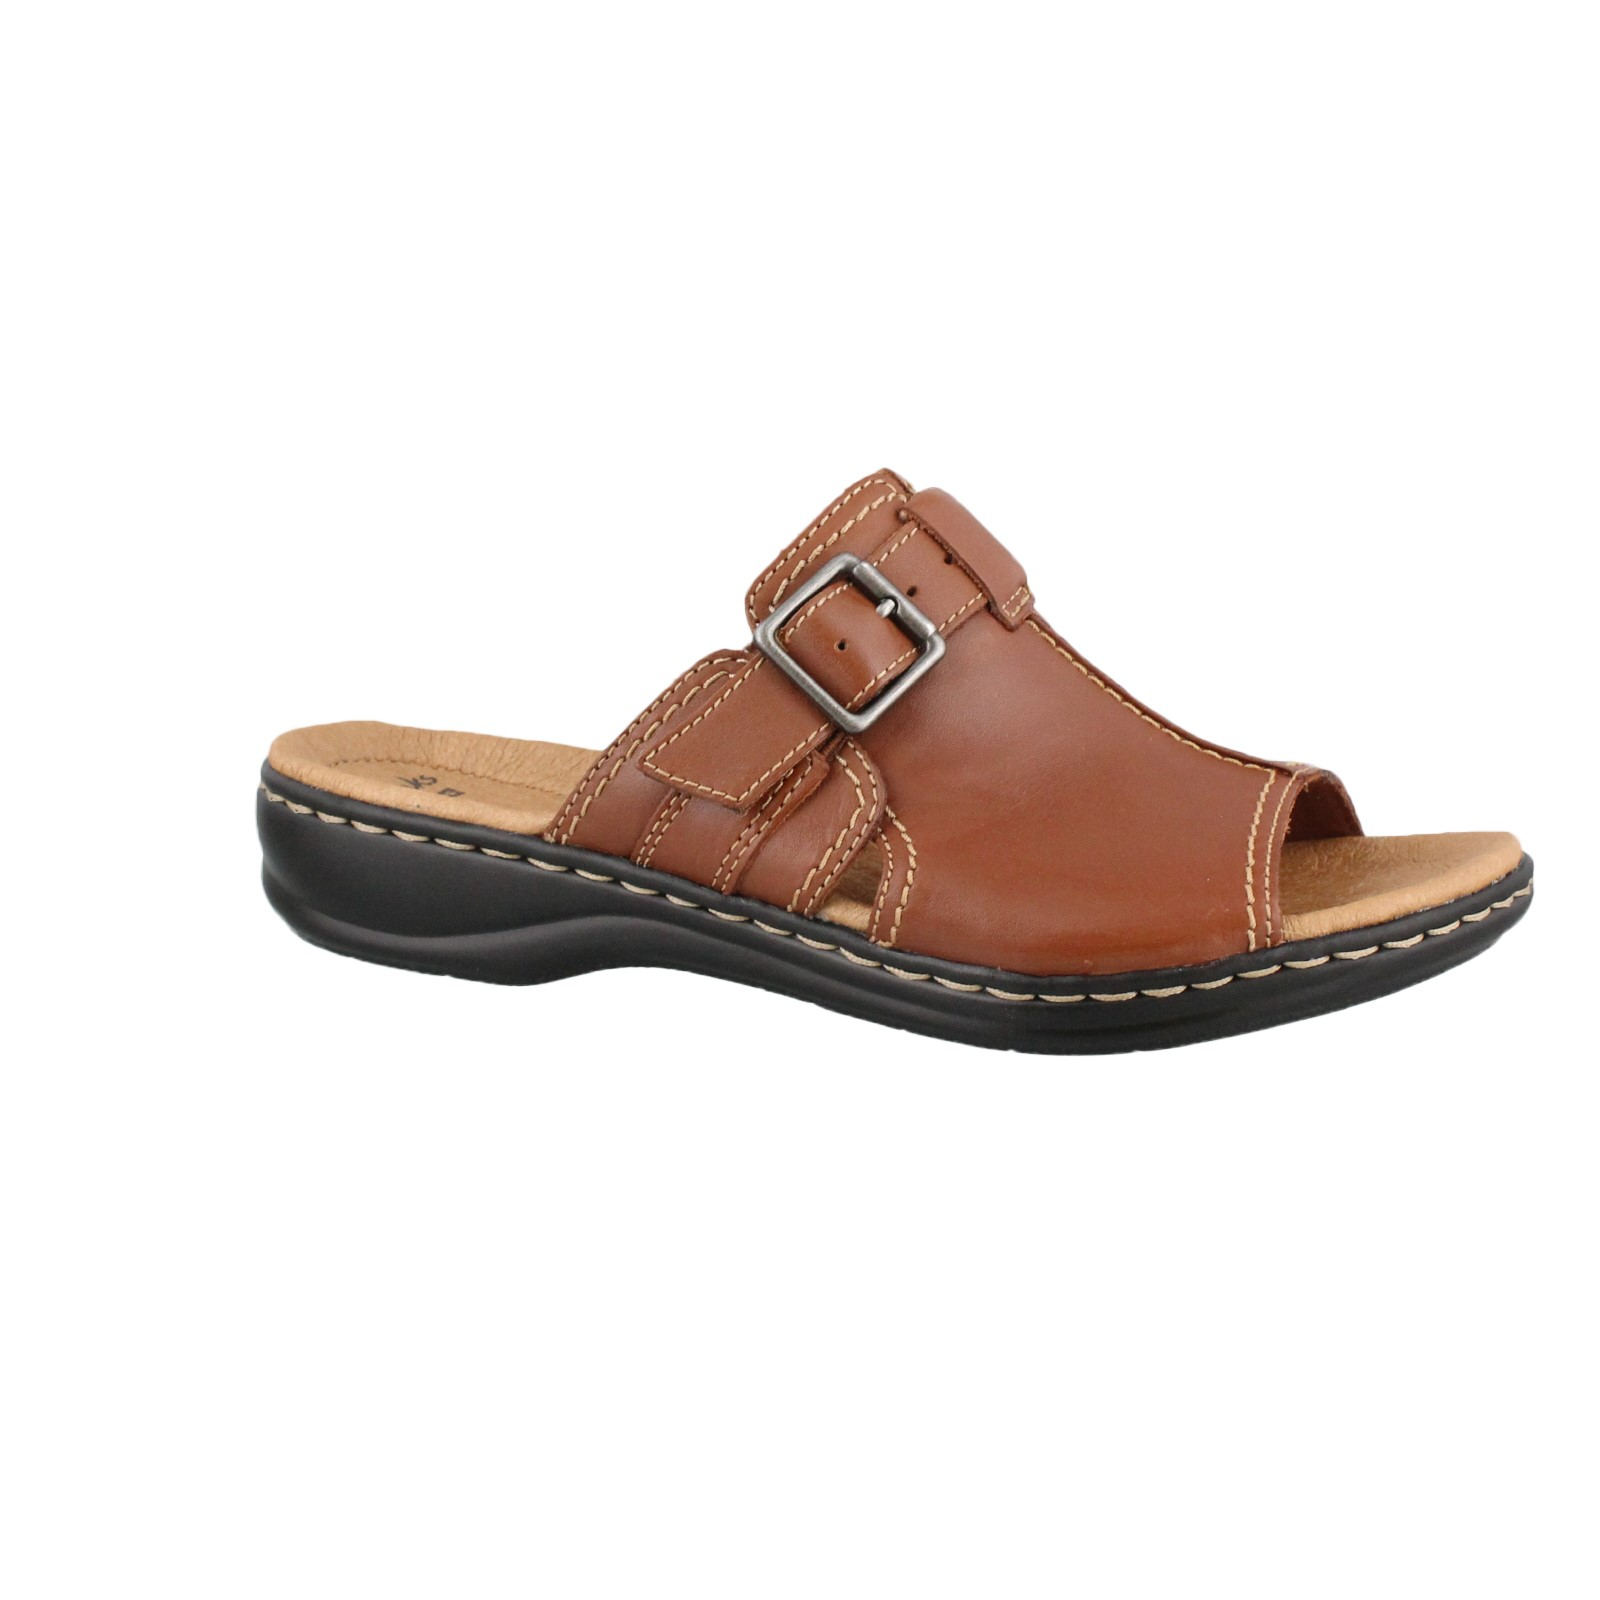 6db2dfdc69be Home  Women s Clarks